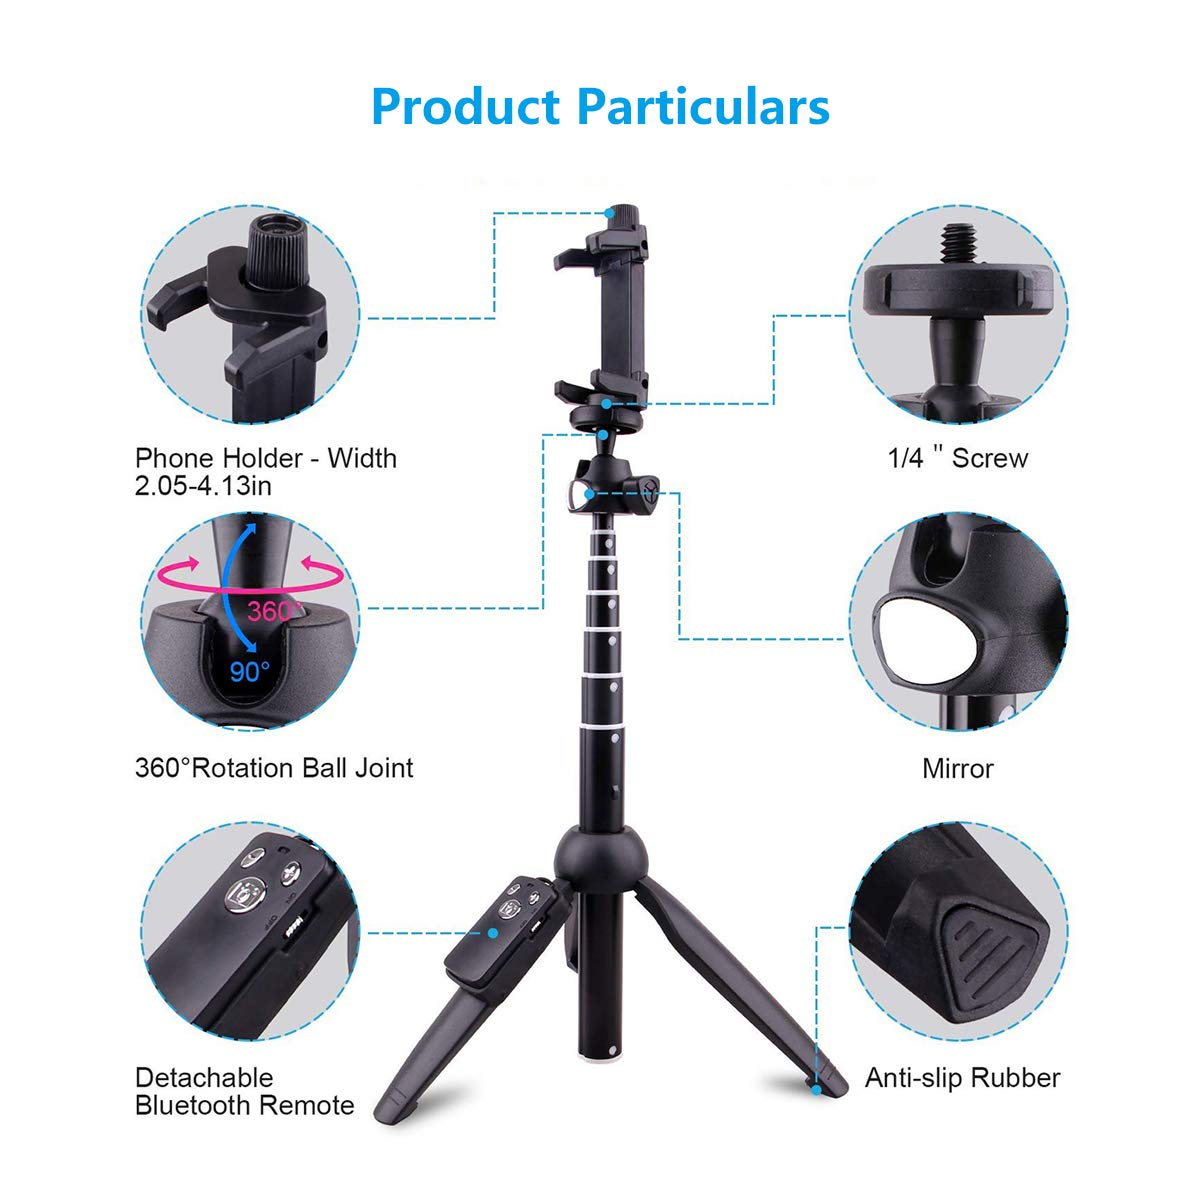 41cfe103ea6e37 Amazon.com: Selfie Stick Tripod Bluetooth Extendable Wired Self-Portrait  Handheld Monopod 360° Rotation Detachable Remote Control Compatible with  iPhone ...